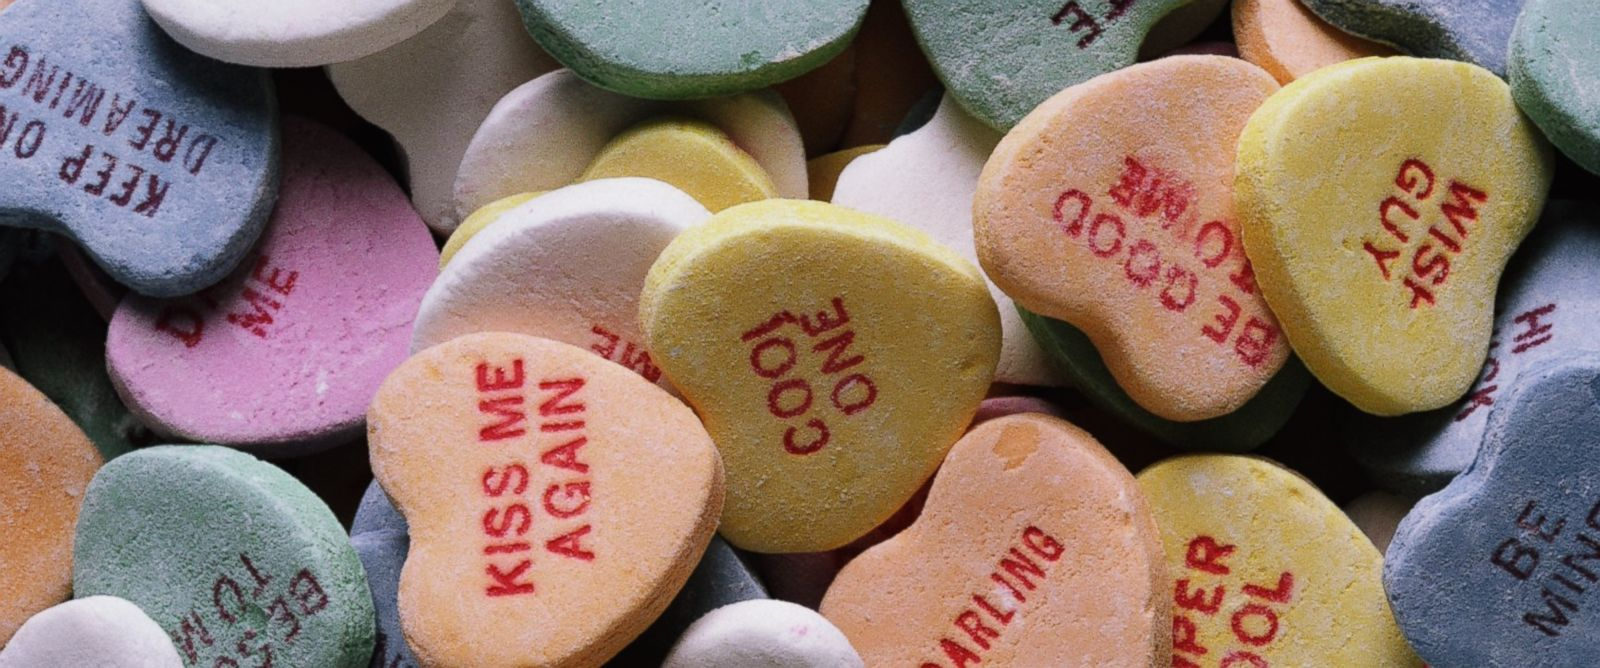 PHOTO: Candy hearts are pictured in this stock photo.